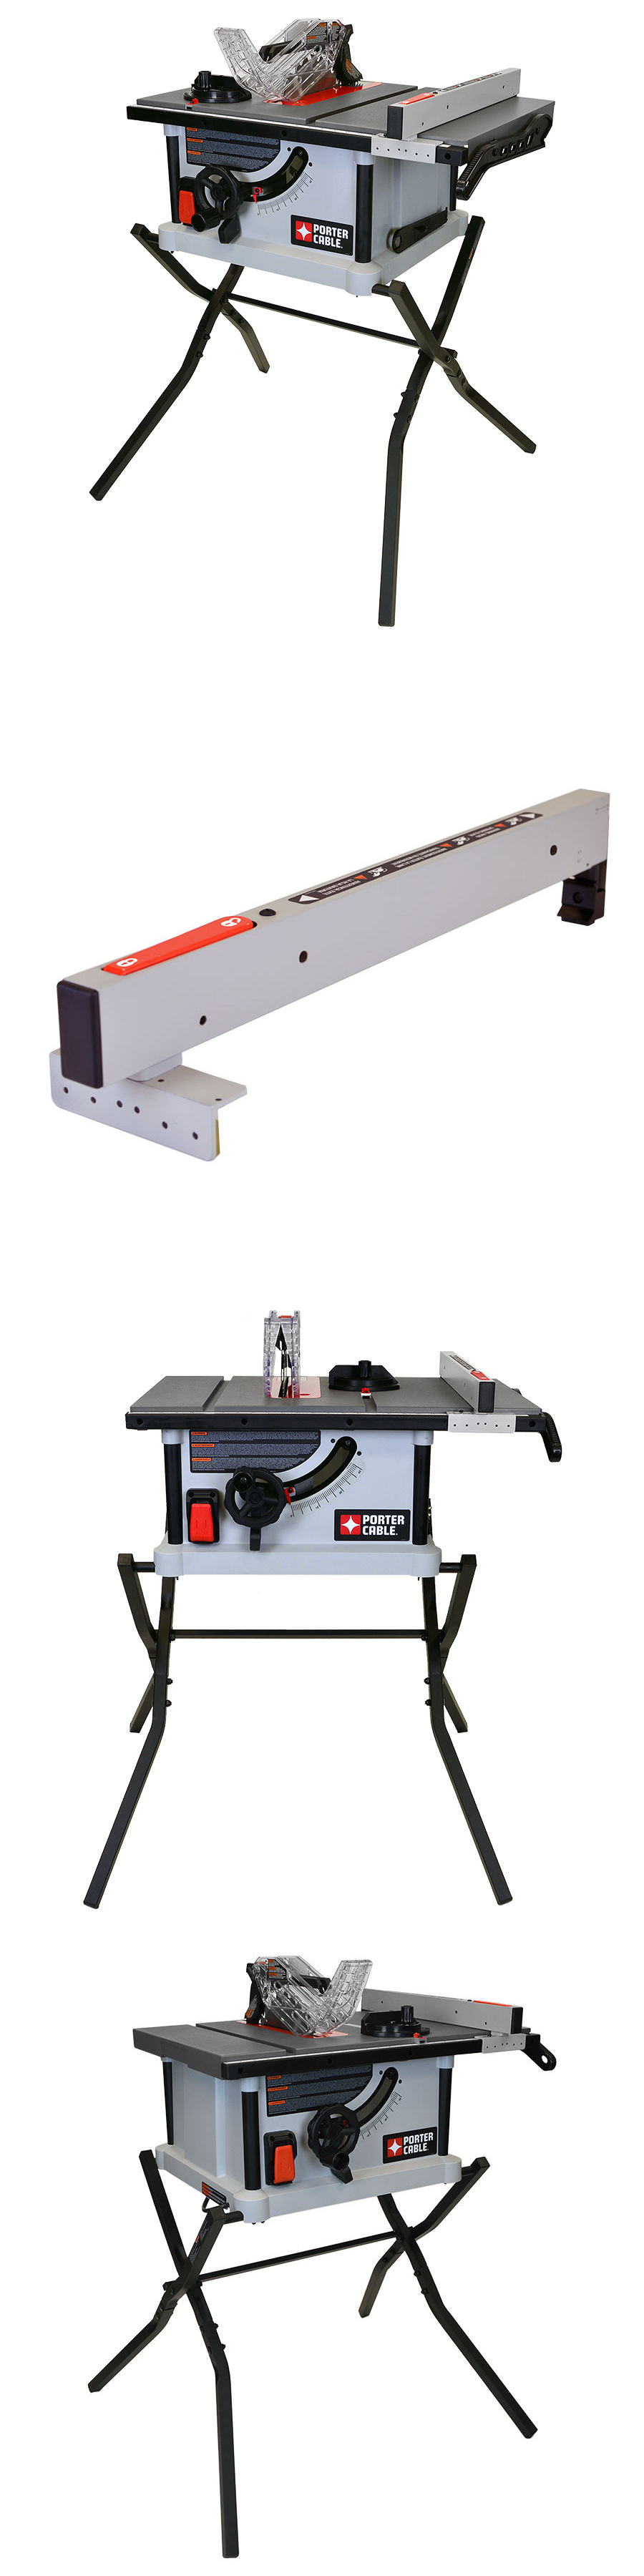 Porter cable 15 amp table saw images wiring table and diagram porter cable 10 15 amp table saw images wiring table and diagram porter cable 15 amp keyboard keysfo Images